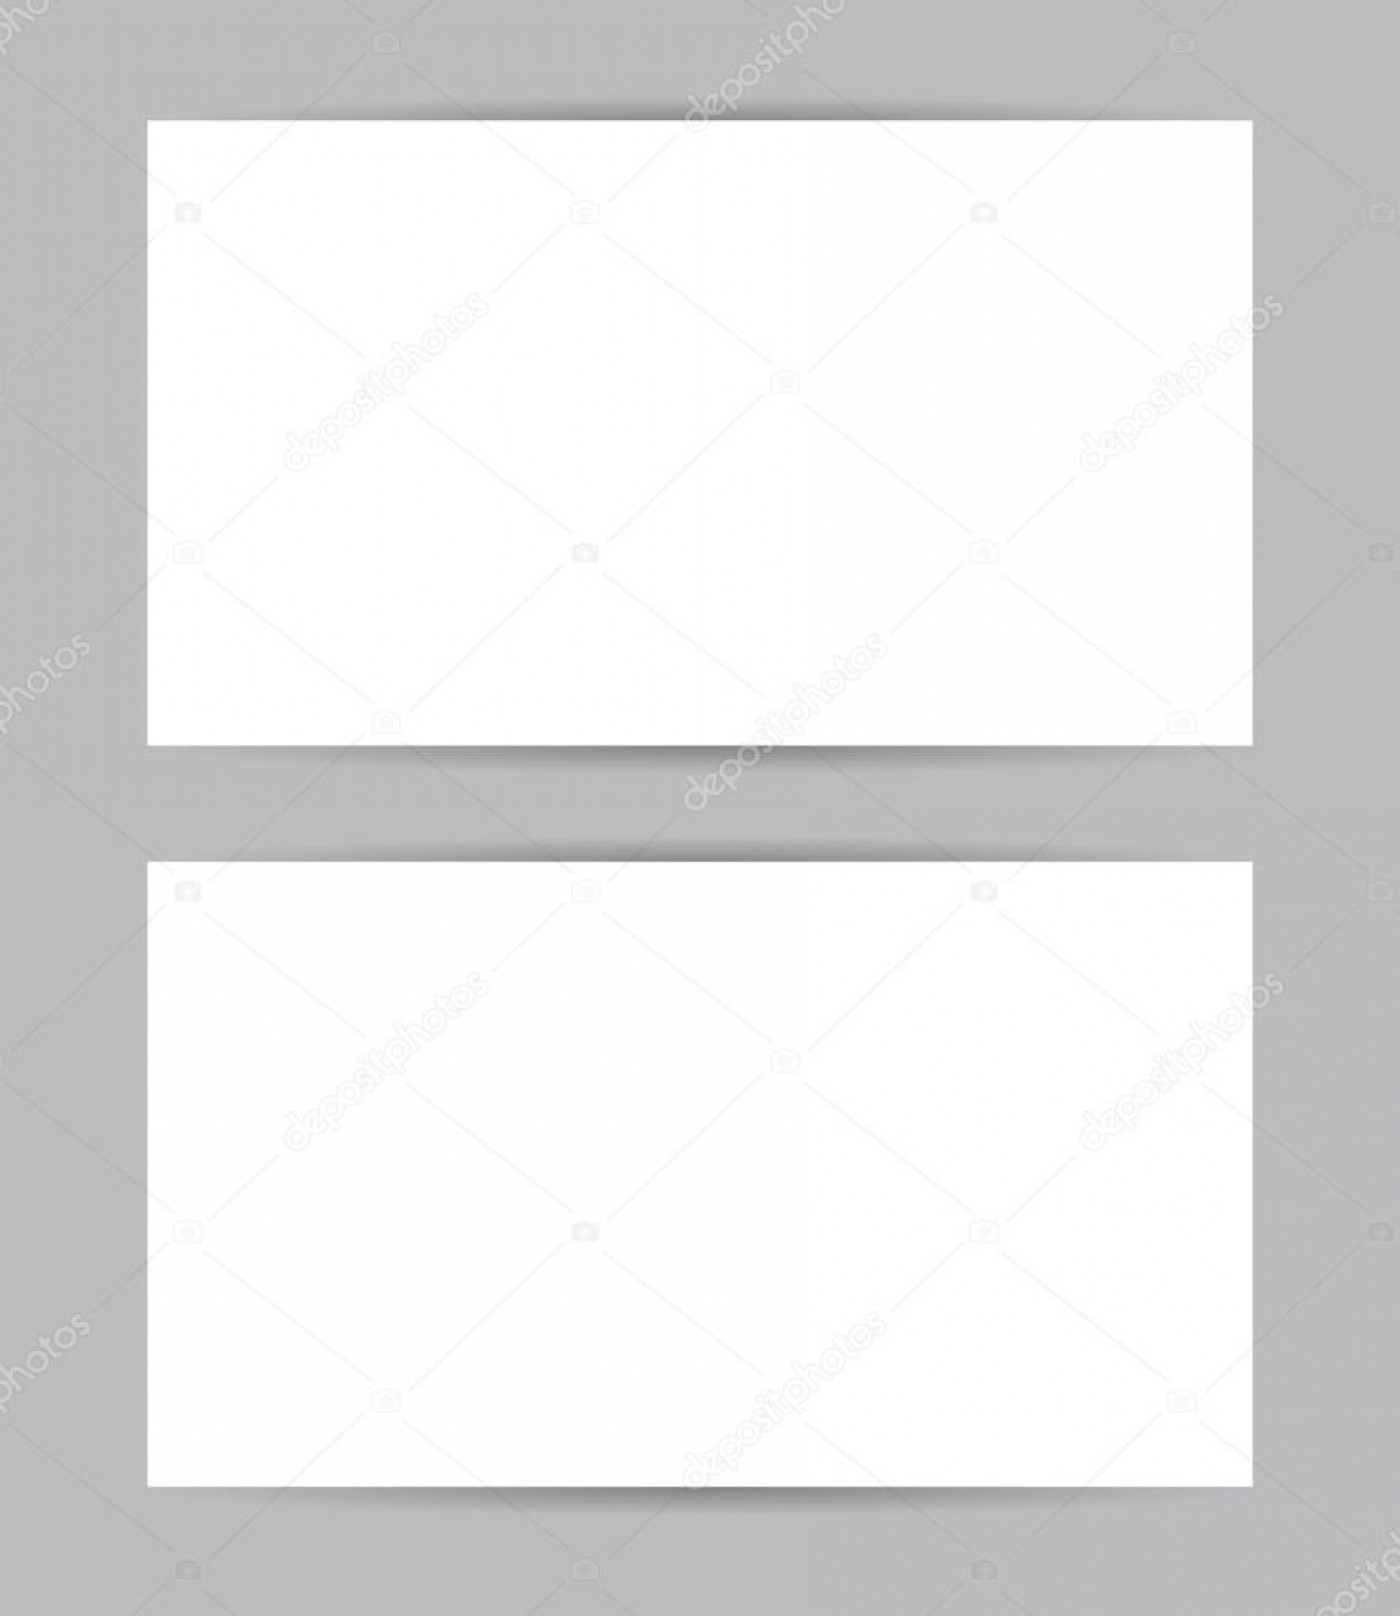 008 Incredible Busines Card Blank Template Example  Download Free1400